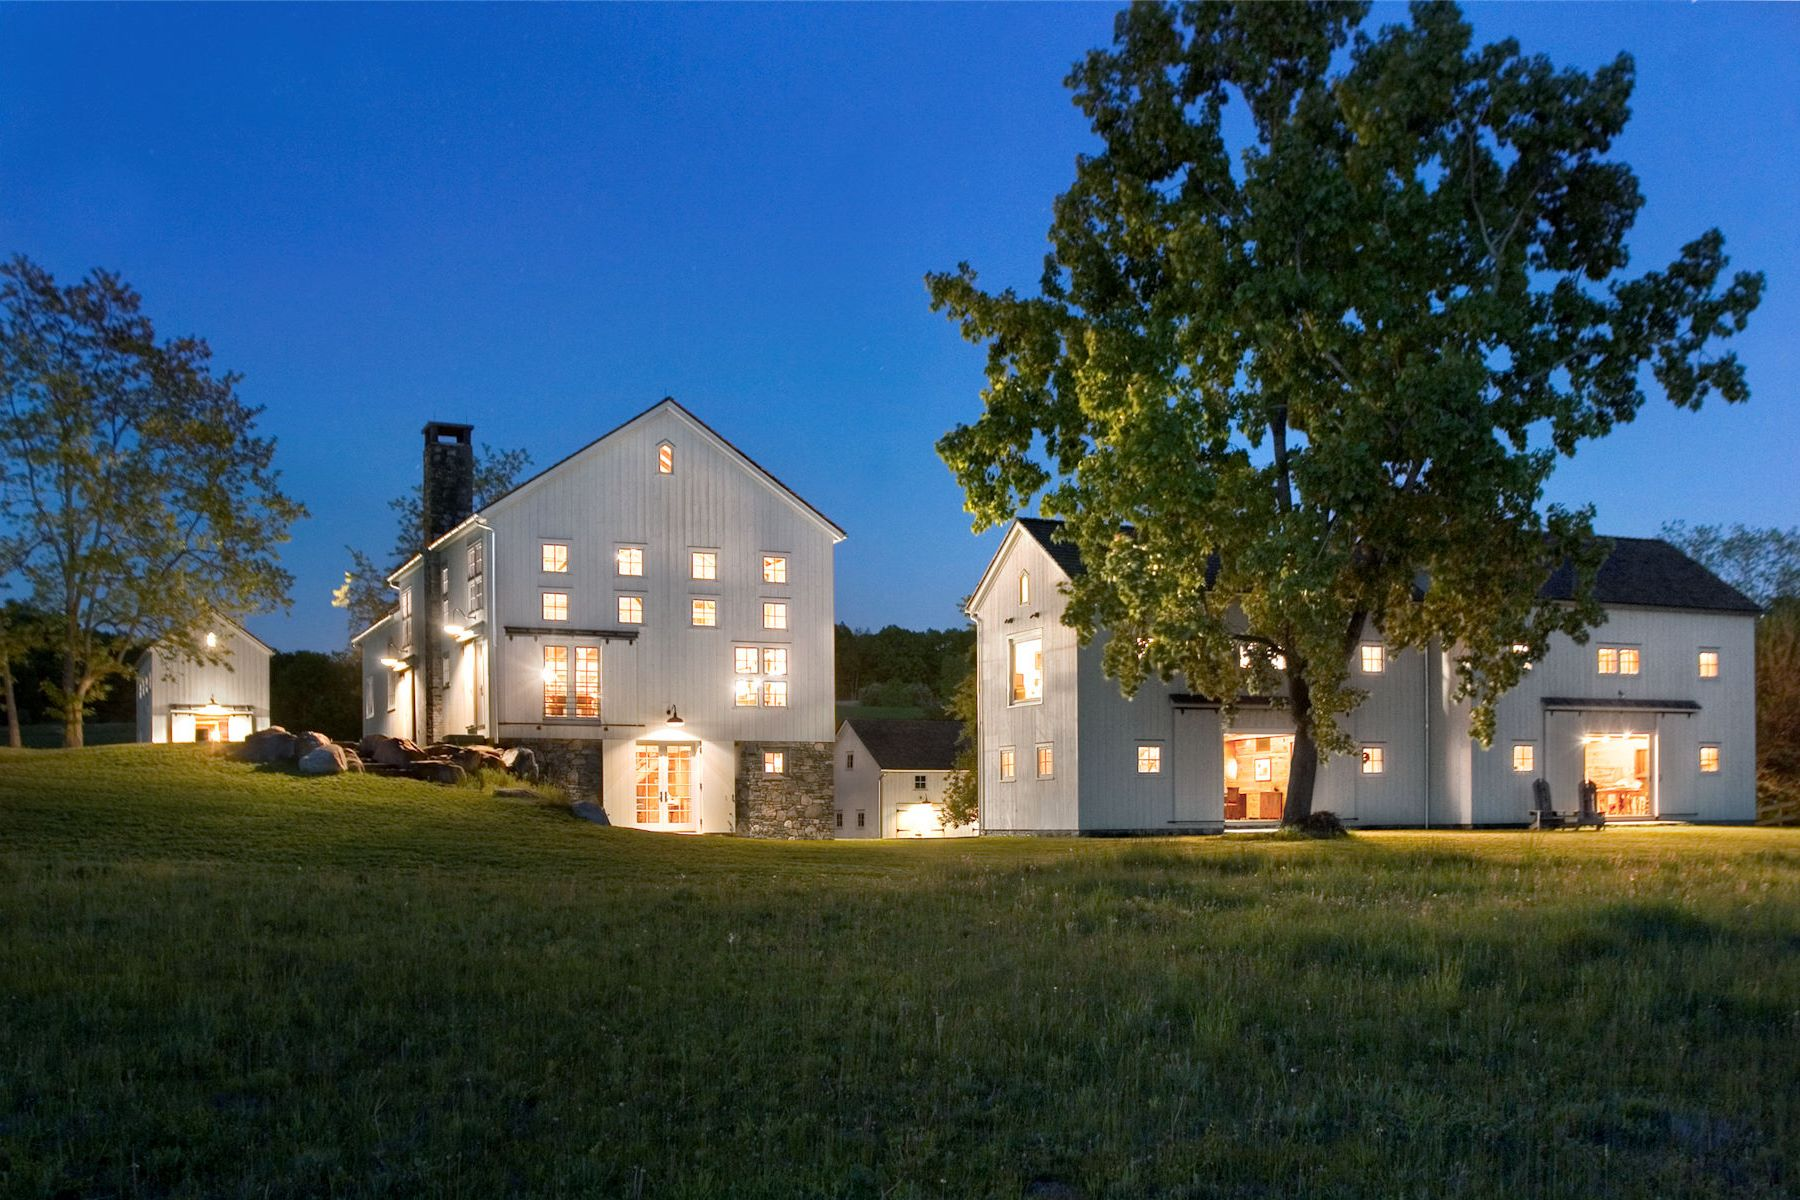 Casa Unifamiliar por un Venta en Four Barns Farm Millbrook, Nueva York 12545 Estados Unidos